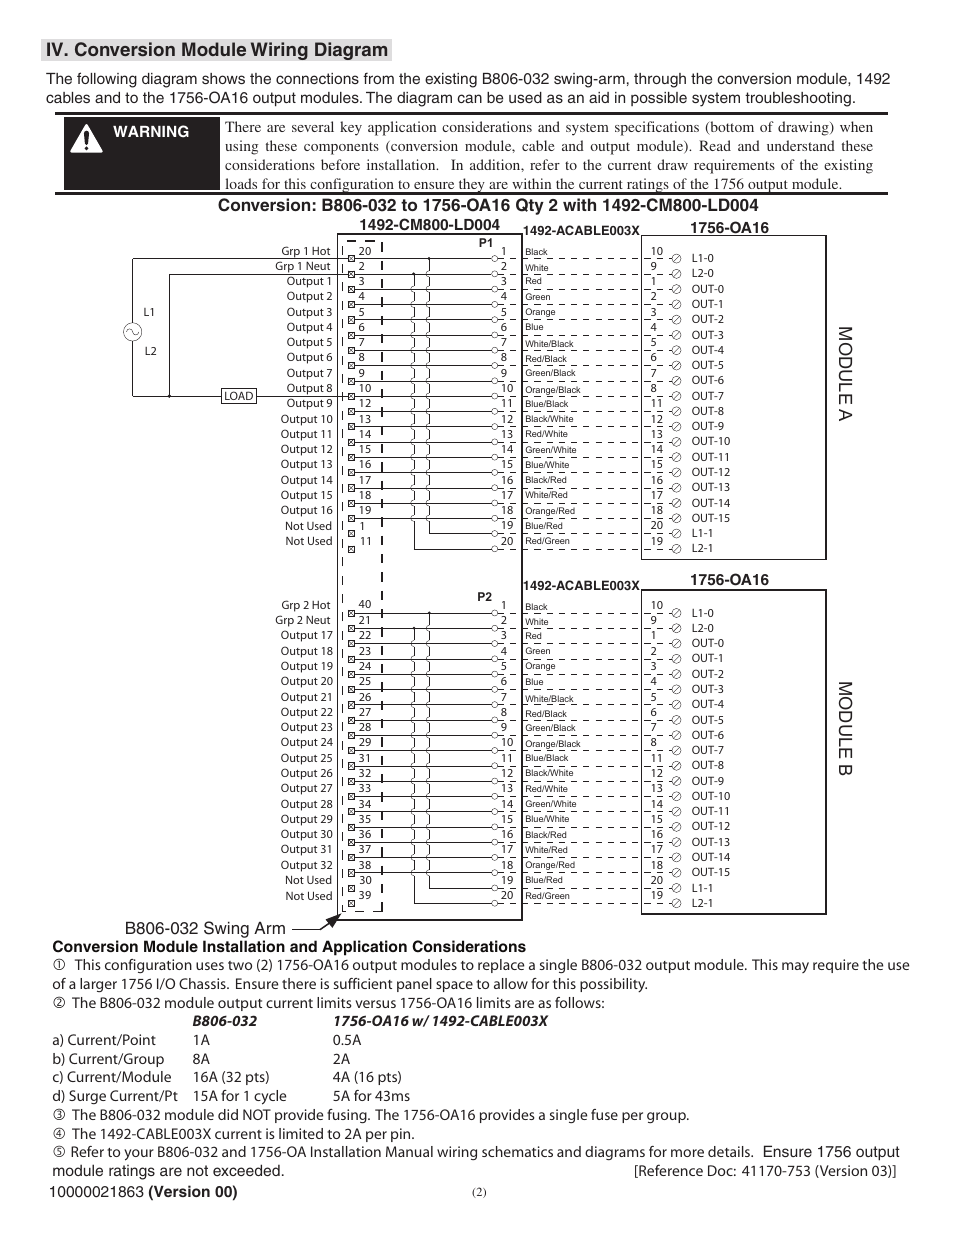 rockwell automation 1492 cm800 ld004 field wire conv module for modicon b806 032 to 1756 oa16 page2?resize\\\=665%2C861 hyosung gt250r wiring diagram beta wiring diagram, tomos wiring  at soozxer.org